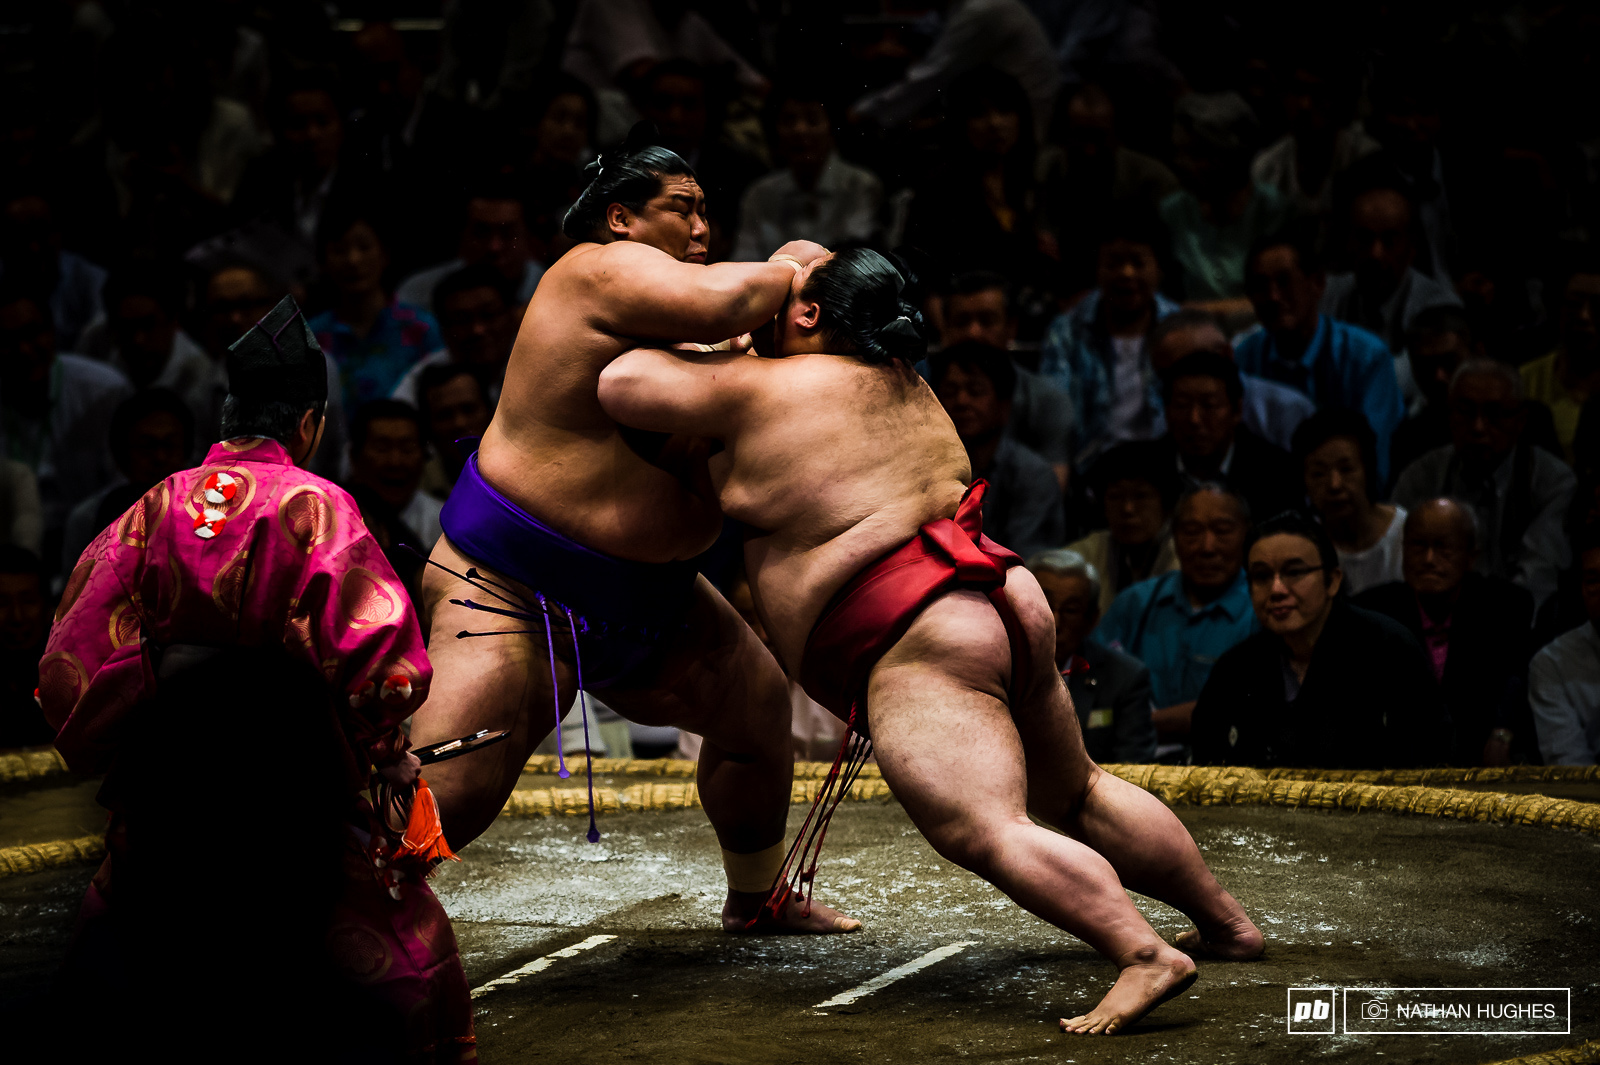 Sumo contests are held in Tokyo only twice a year and we got the timing right.